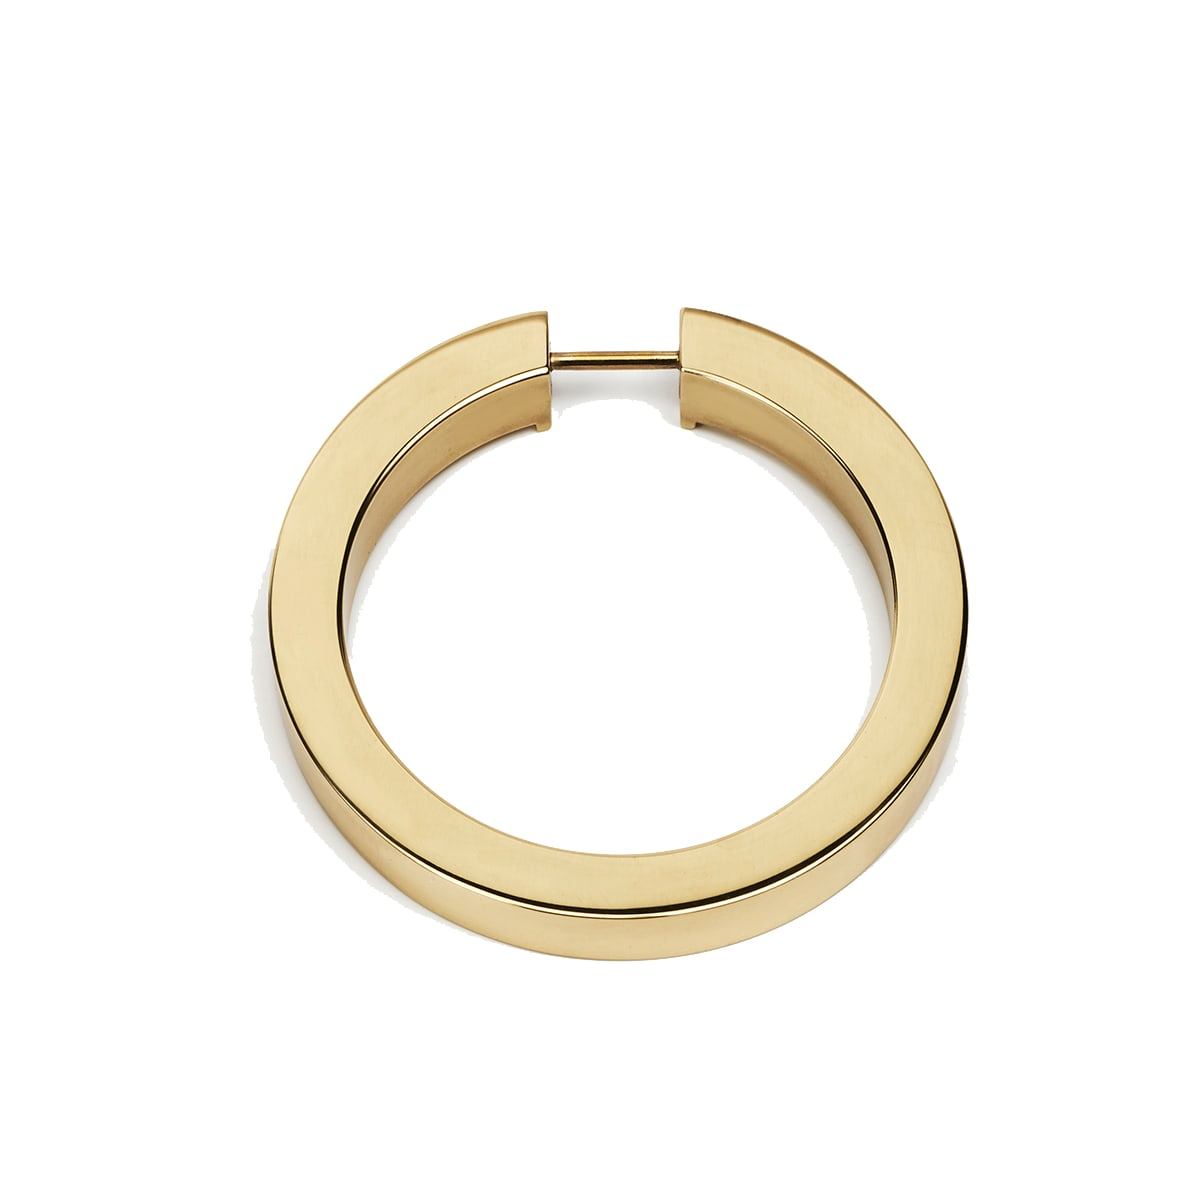 Alno 3-1/2 Inch Wide Round Cabinet Ring Pull - Less Mount